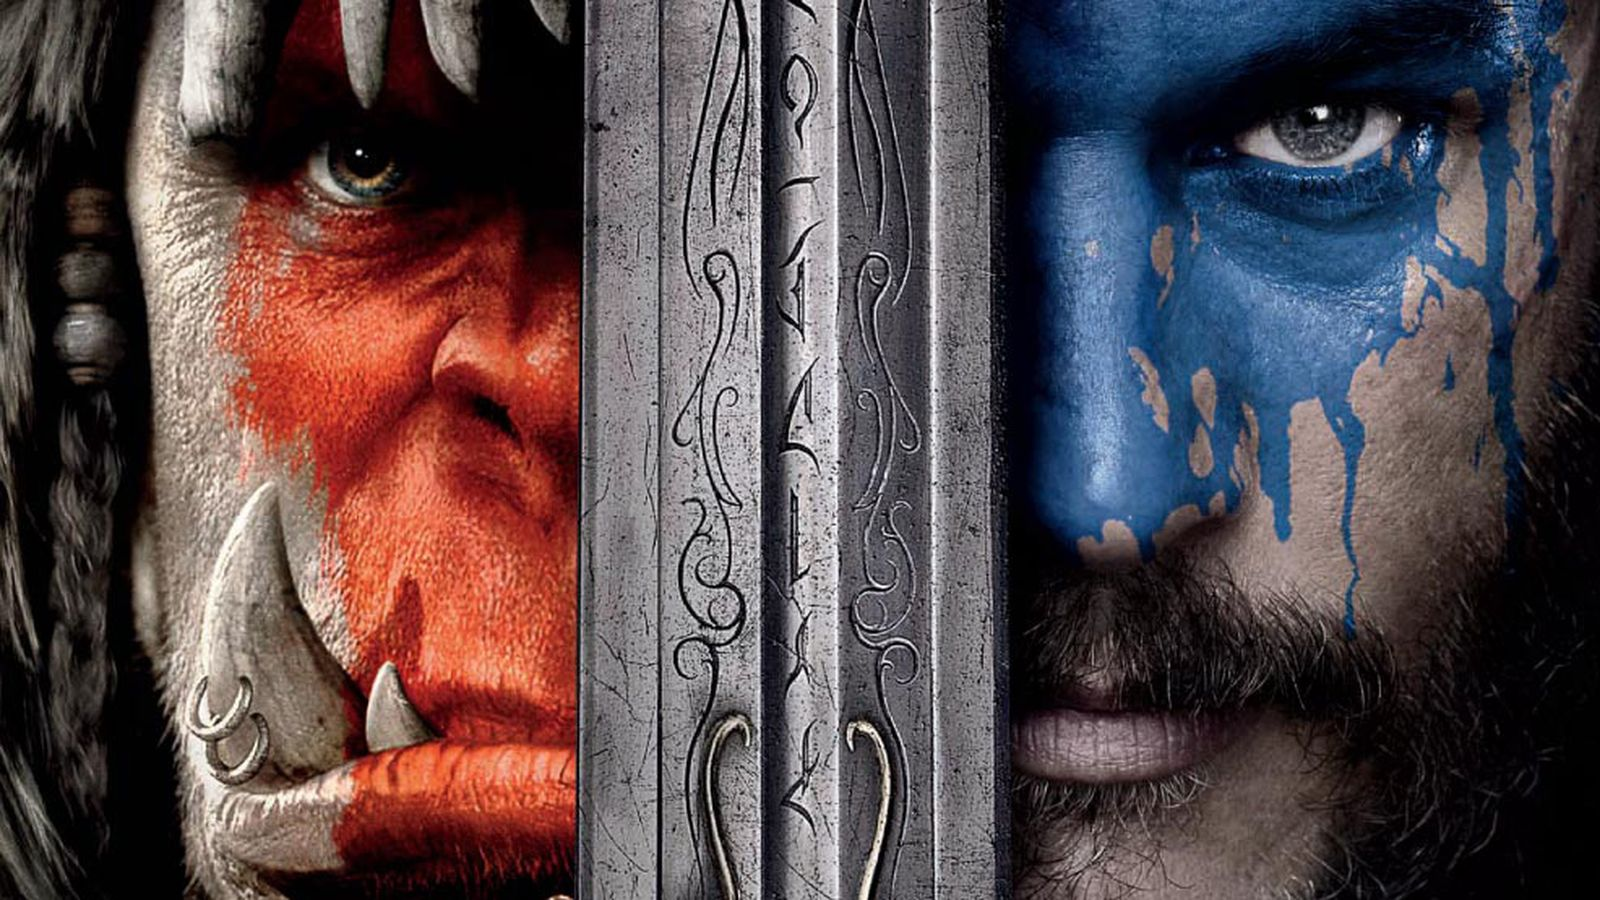 The New Warcraft Movie Trailer Looks Ridiculously Exciting warcraft movie poster full 987.0.0